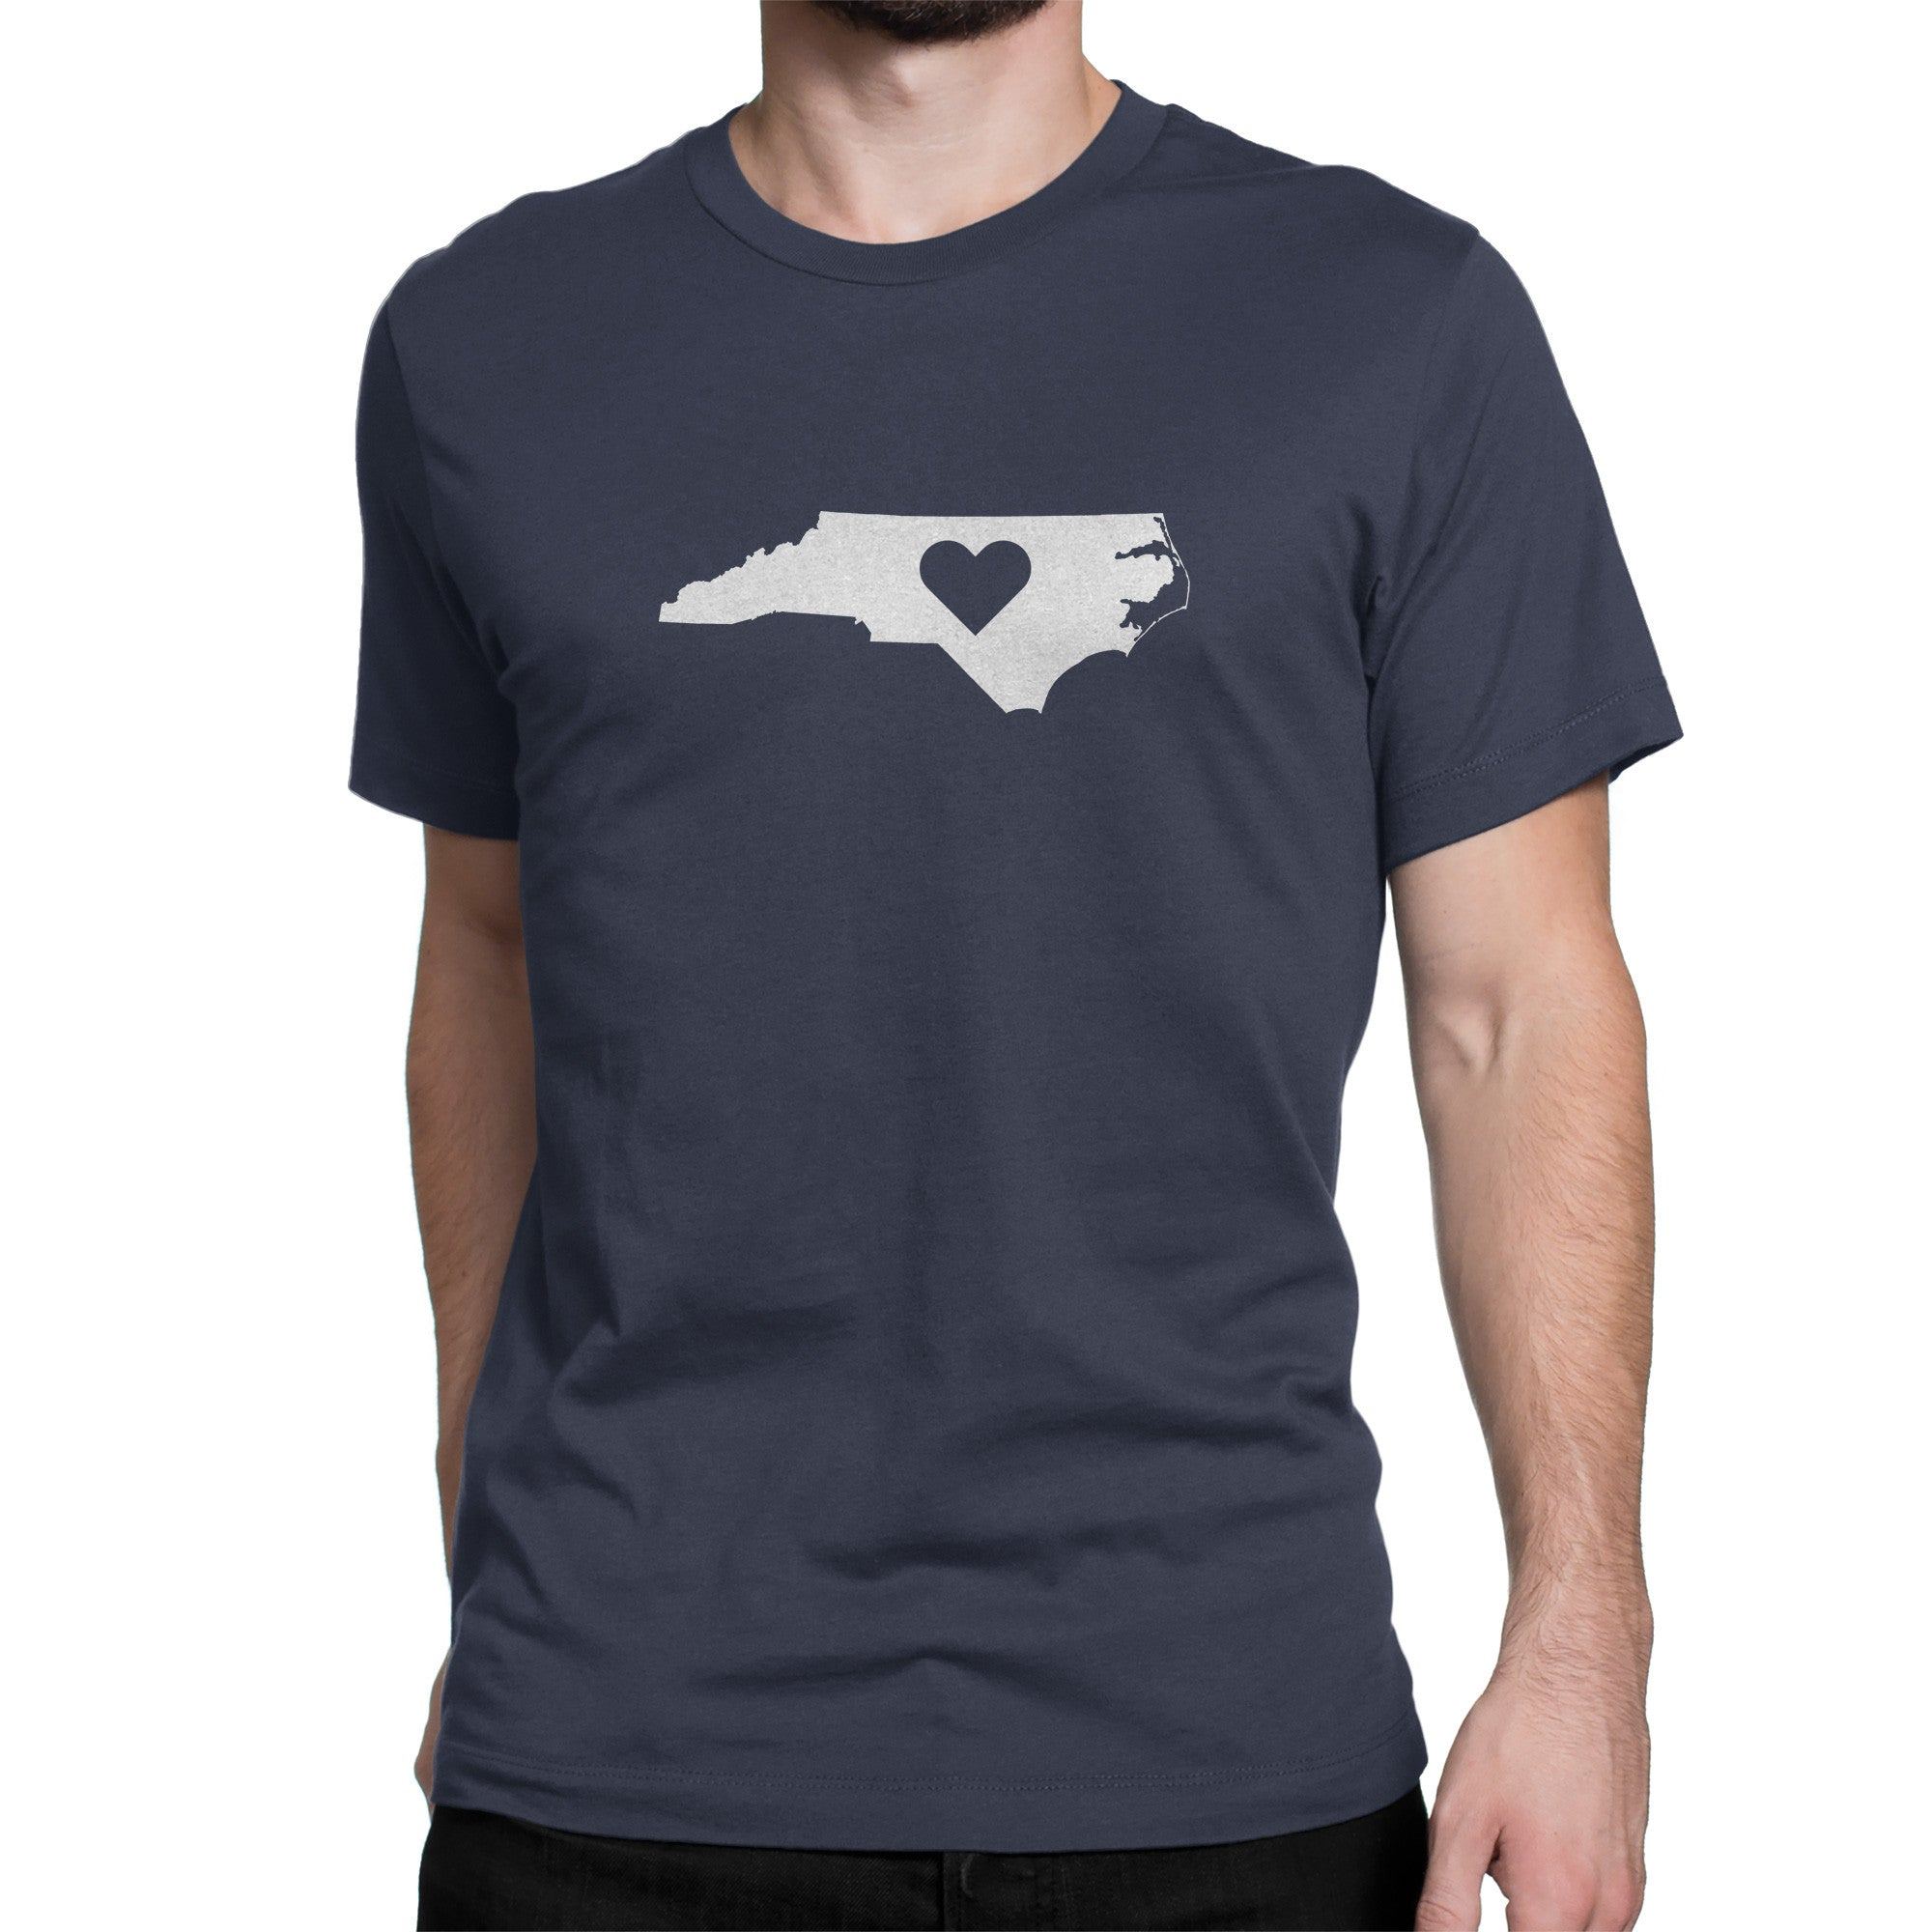 North Carolina State Heart Shirt Blue